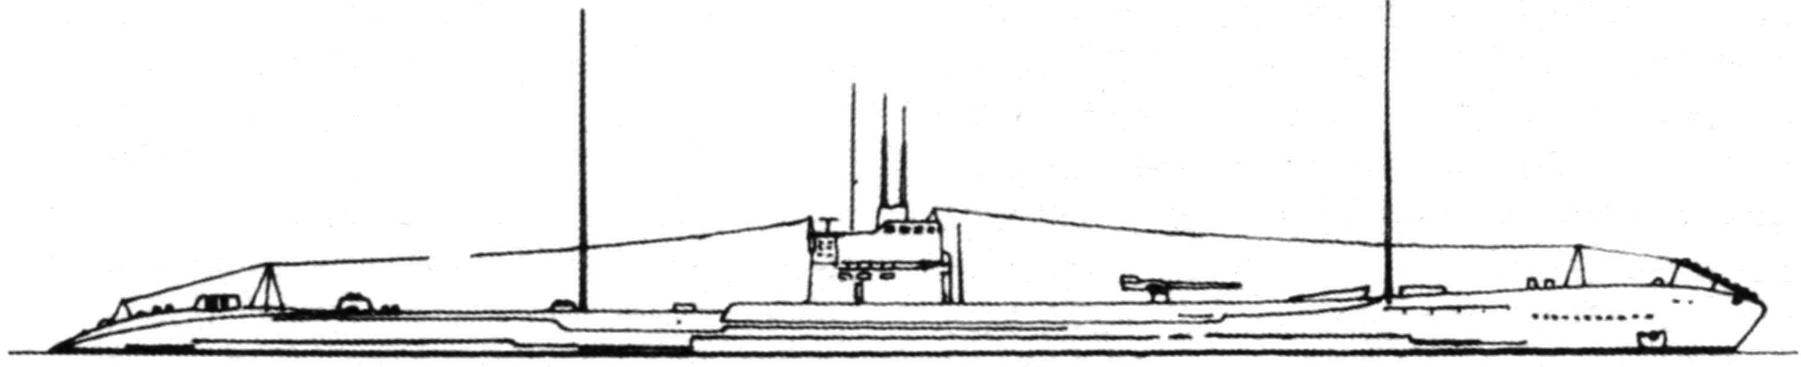 Submarine No. 51 of the